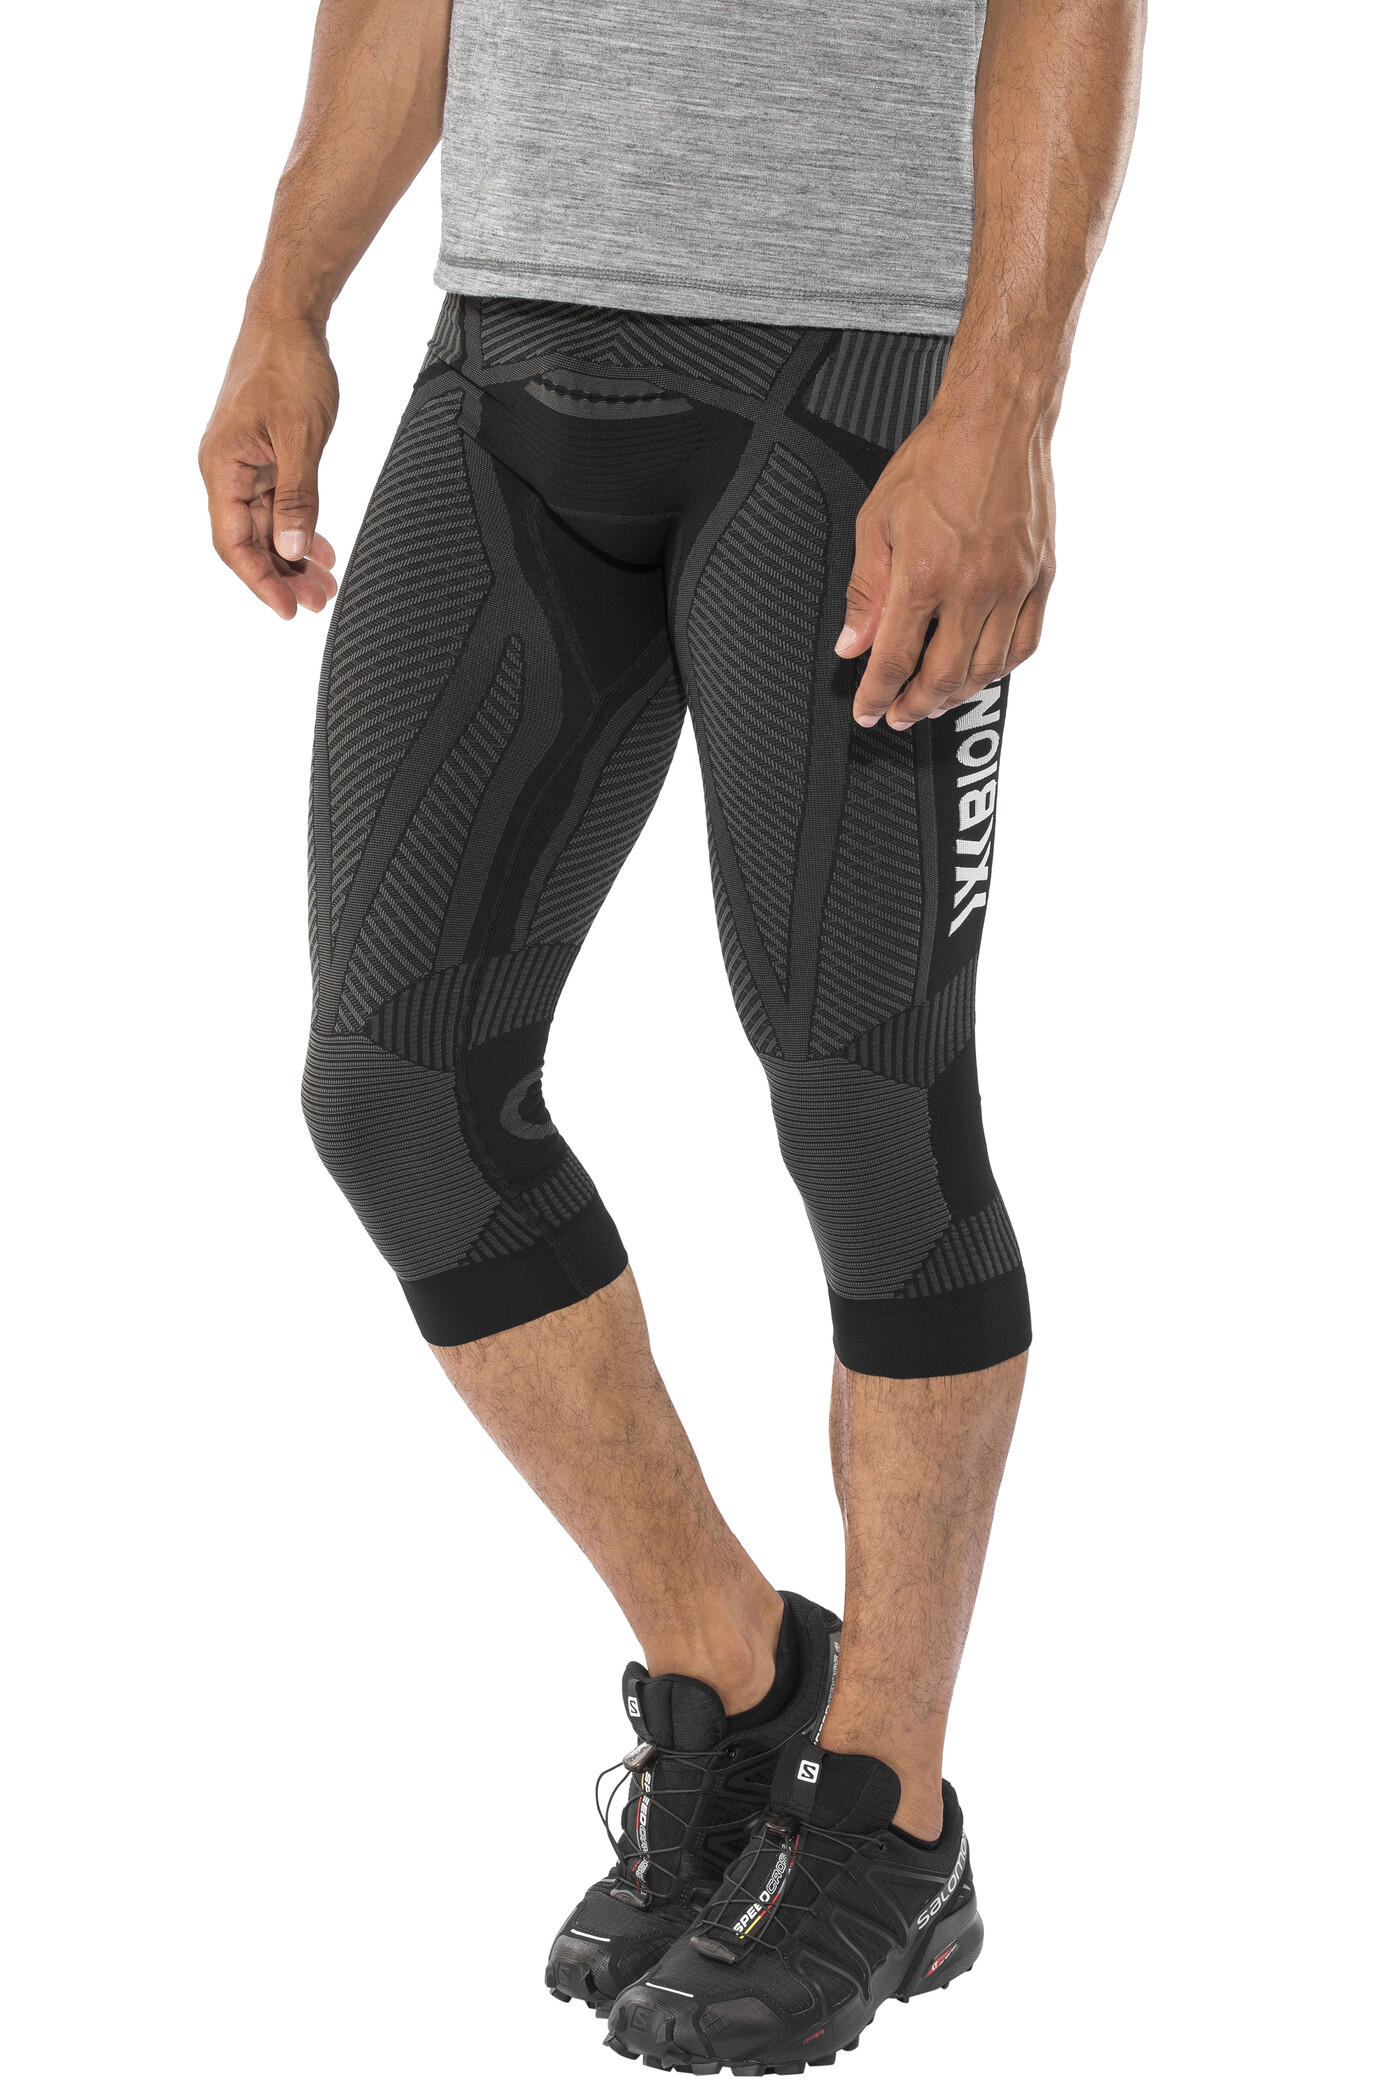 X-Bionic The Trick Running Pants size M Men, black/anthracite | Trousers